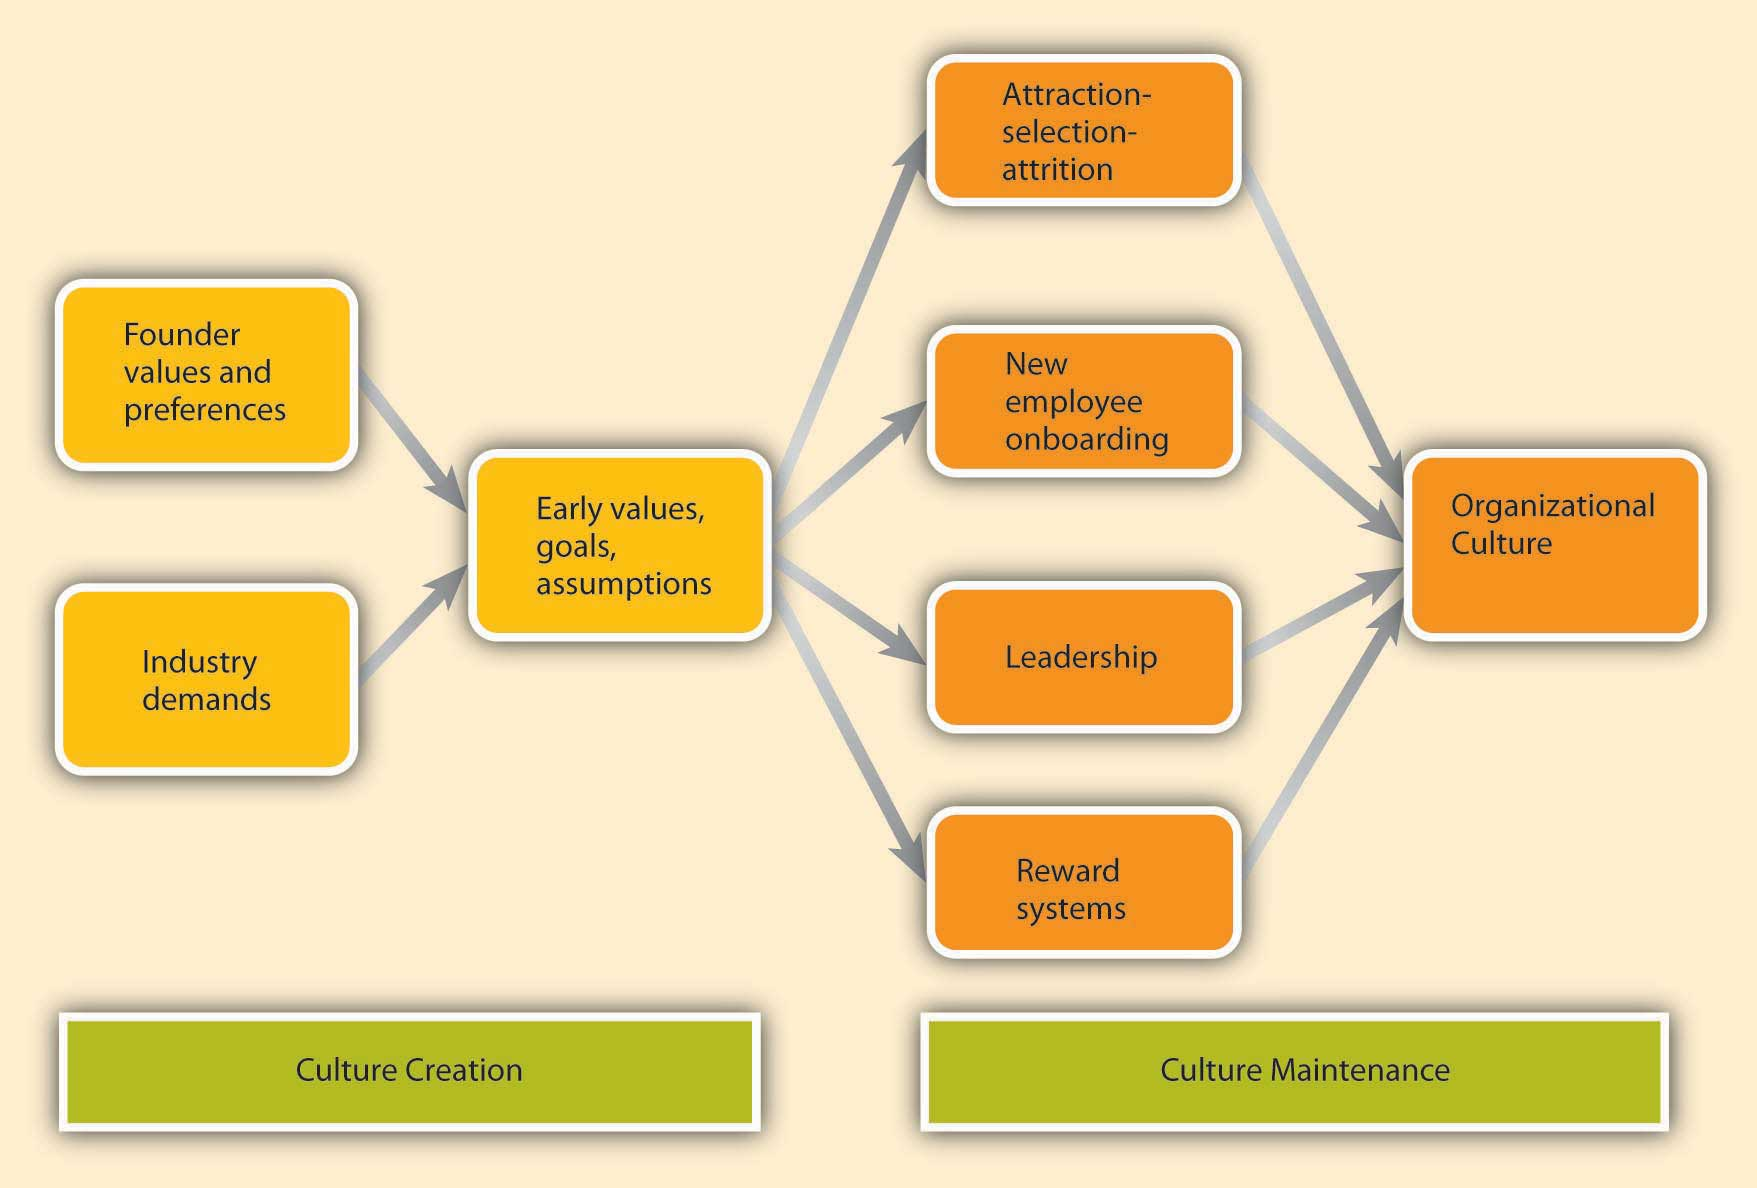 Culture Creation and Maintenance